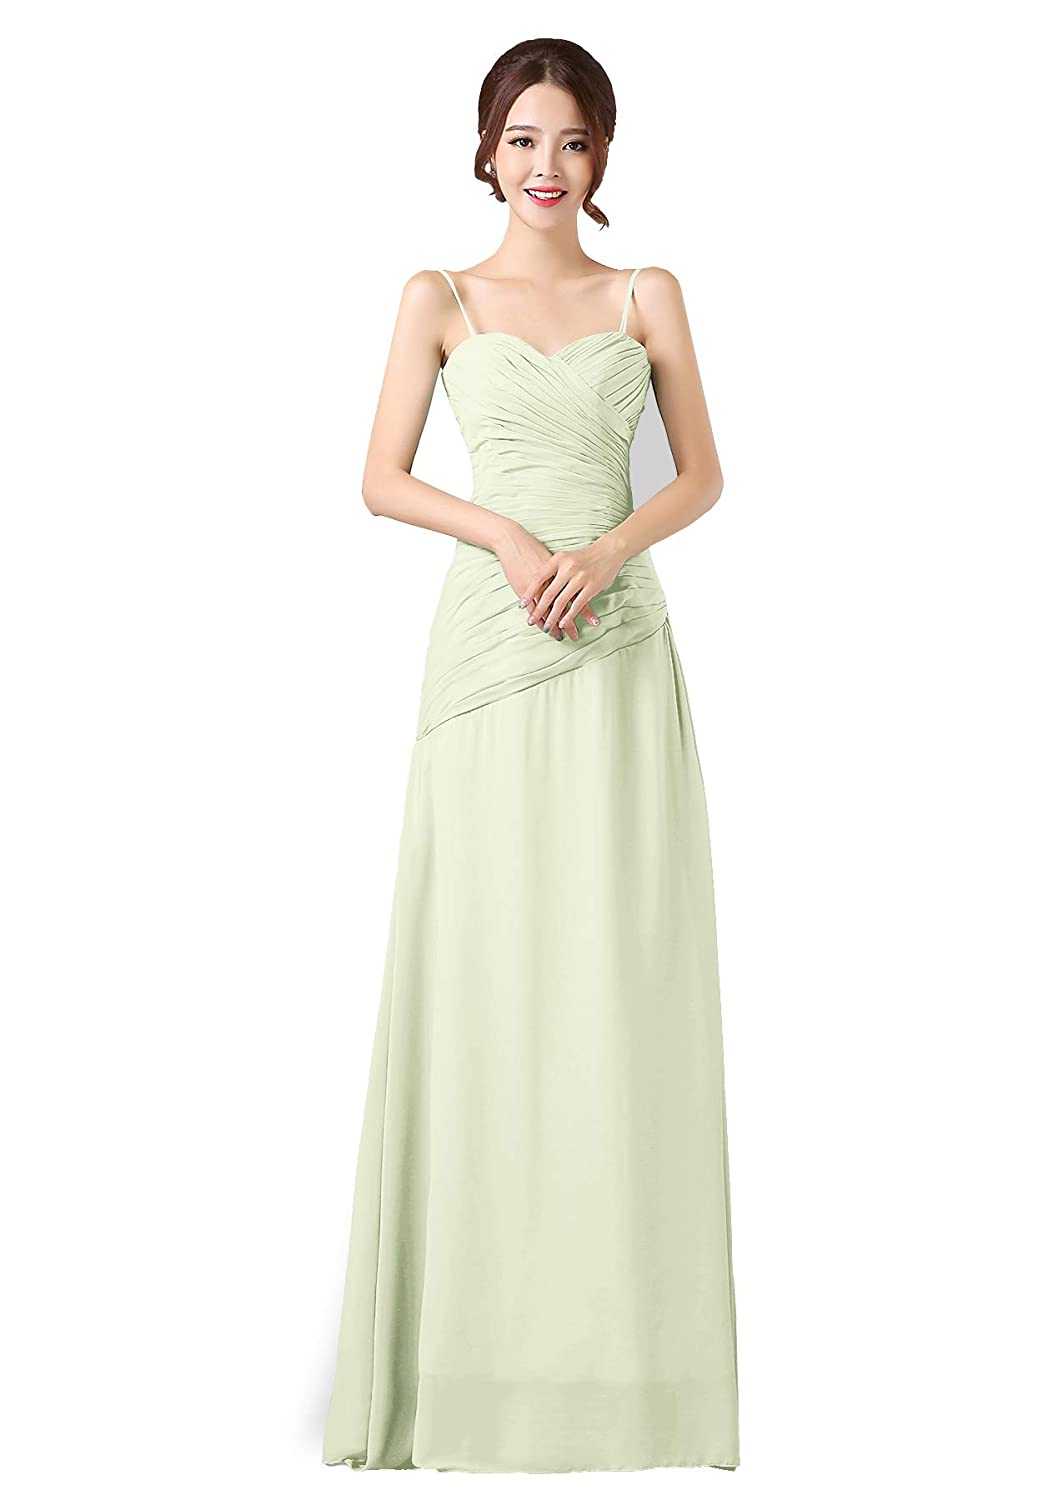 Pastel Green ANGELWARDROBE Spaghetti Straps Bridesmaid Dresses Long Oblique Ruffles Party Prom Gowns